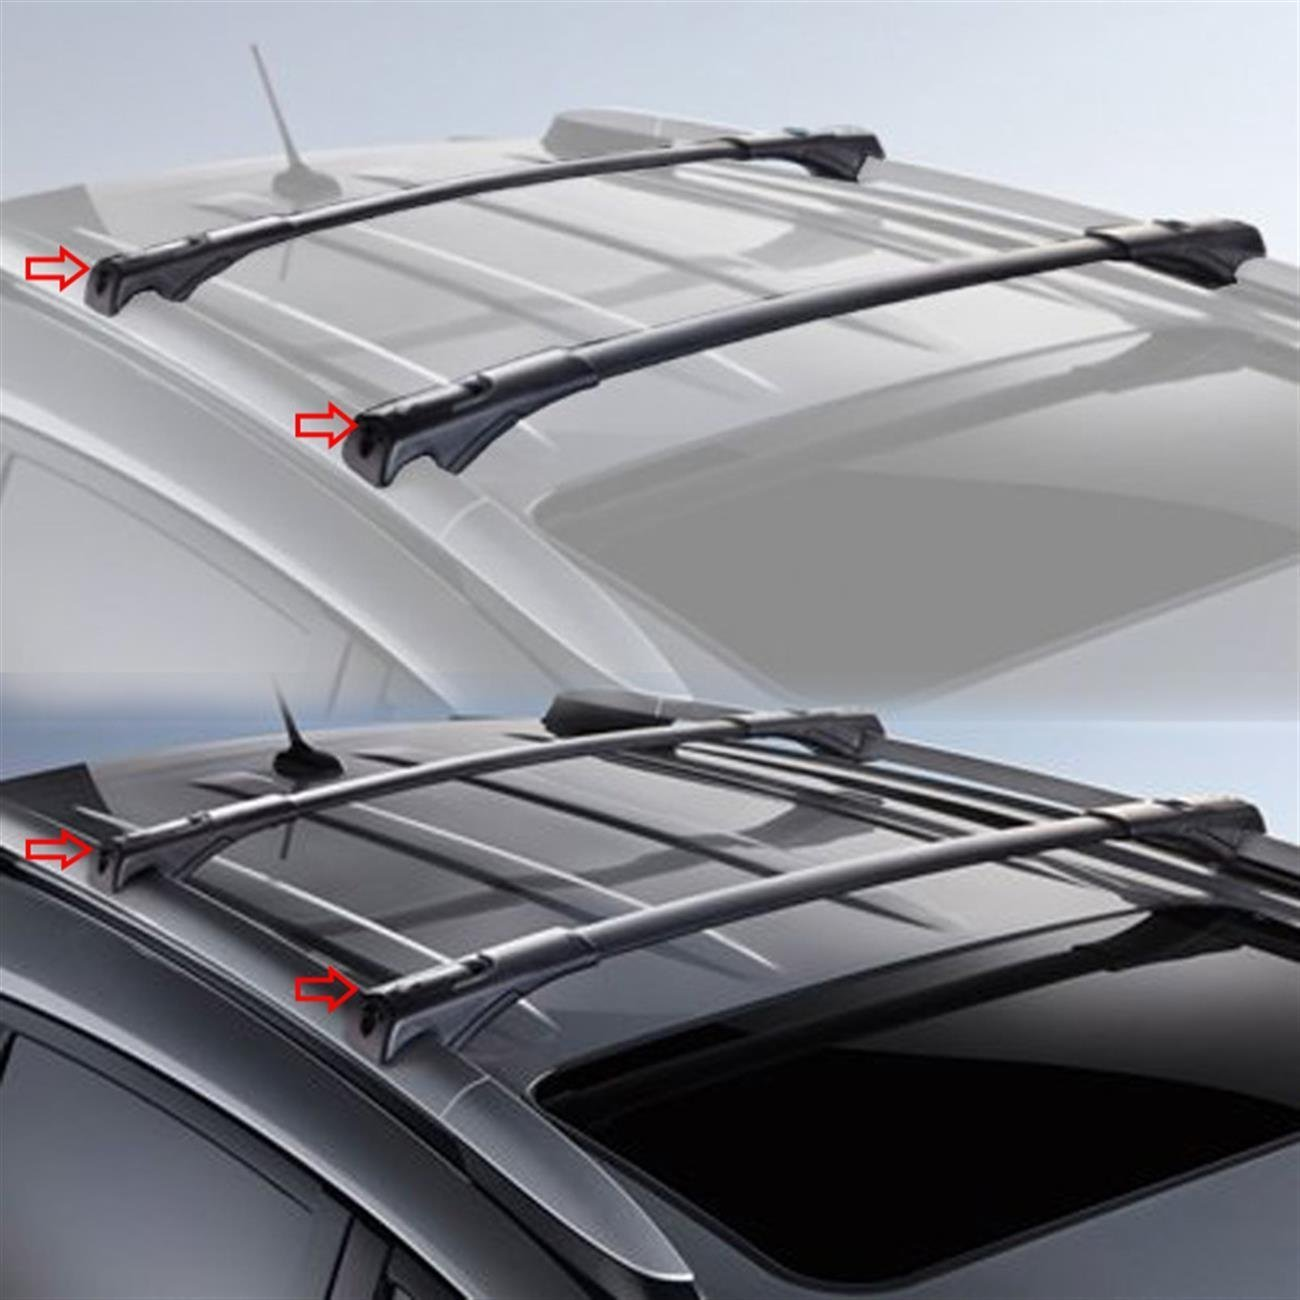 ROOF RACK CROSS BARS FOR TOYOTA RAV4 w/Factory Side Rails 2014 2015 2016 2017 2018 Black Aluminum OE Style Roof Rack Top Cross Bars w/Lock & Key Luggage Roof Rack Rail Cross Bars ROKIOTOEX